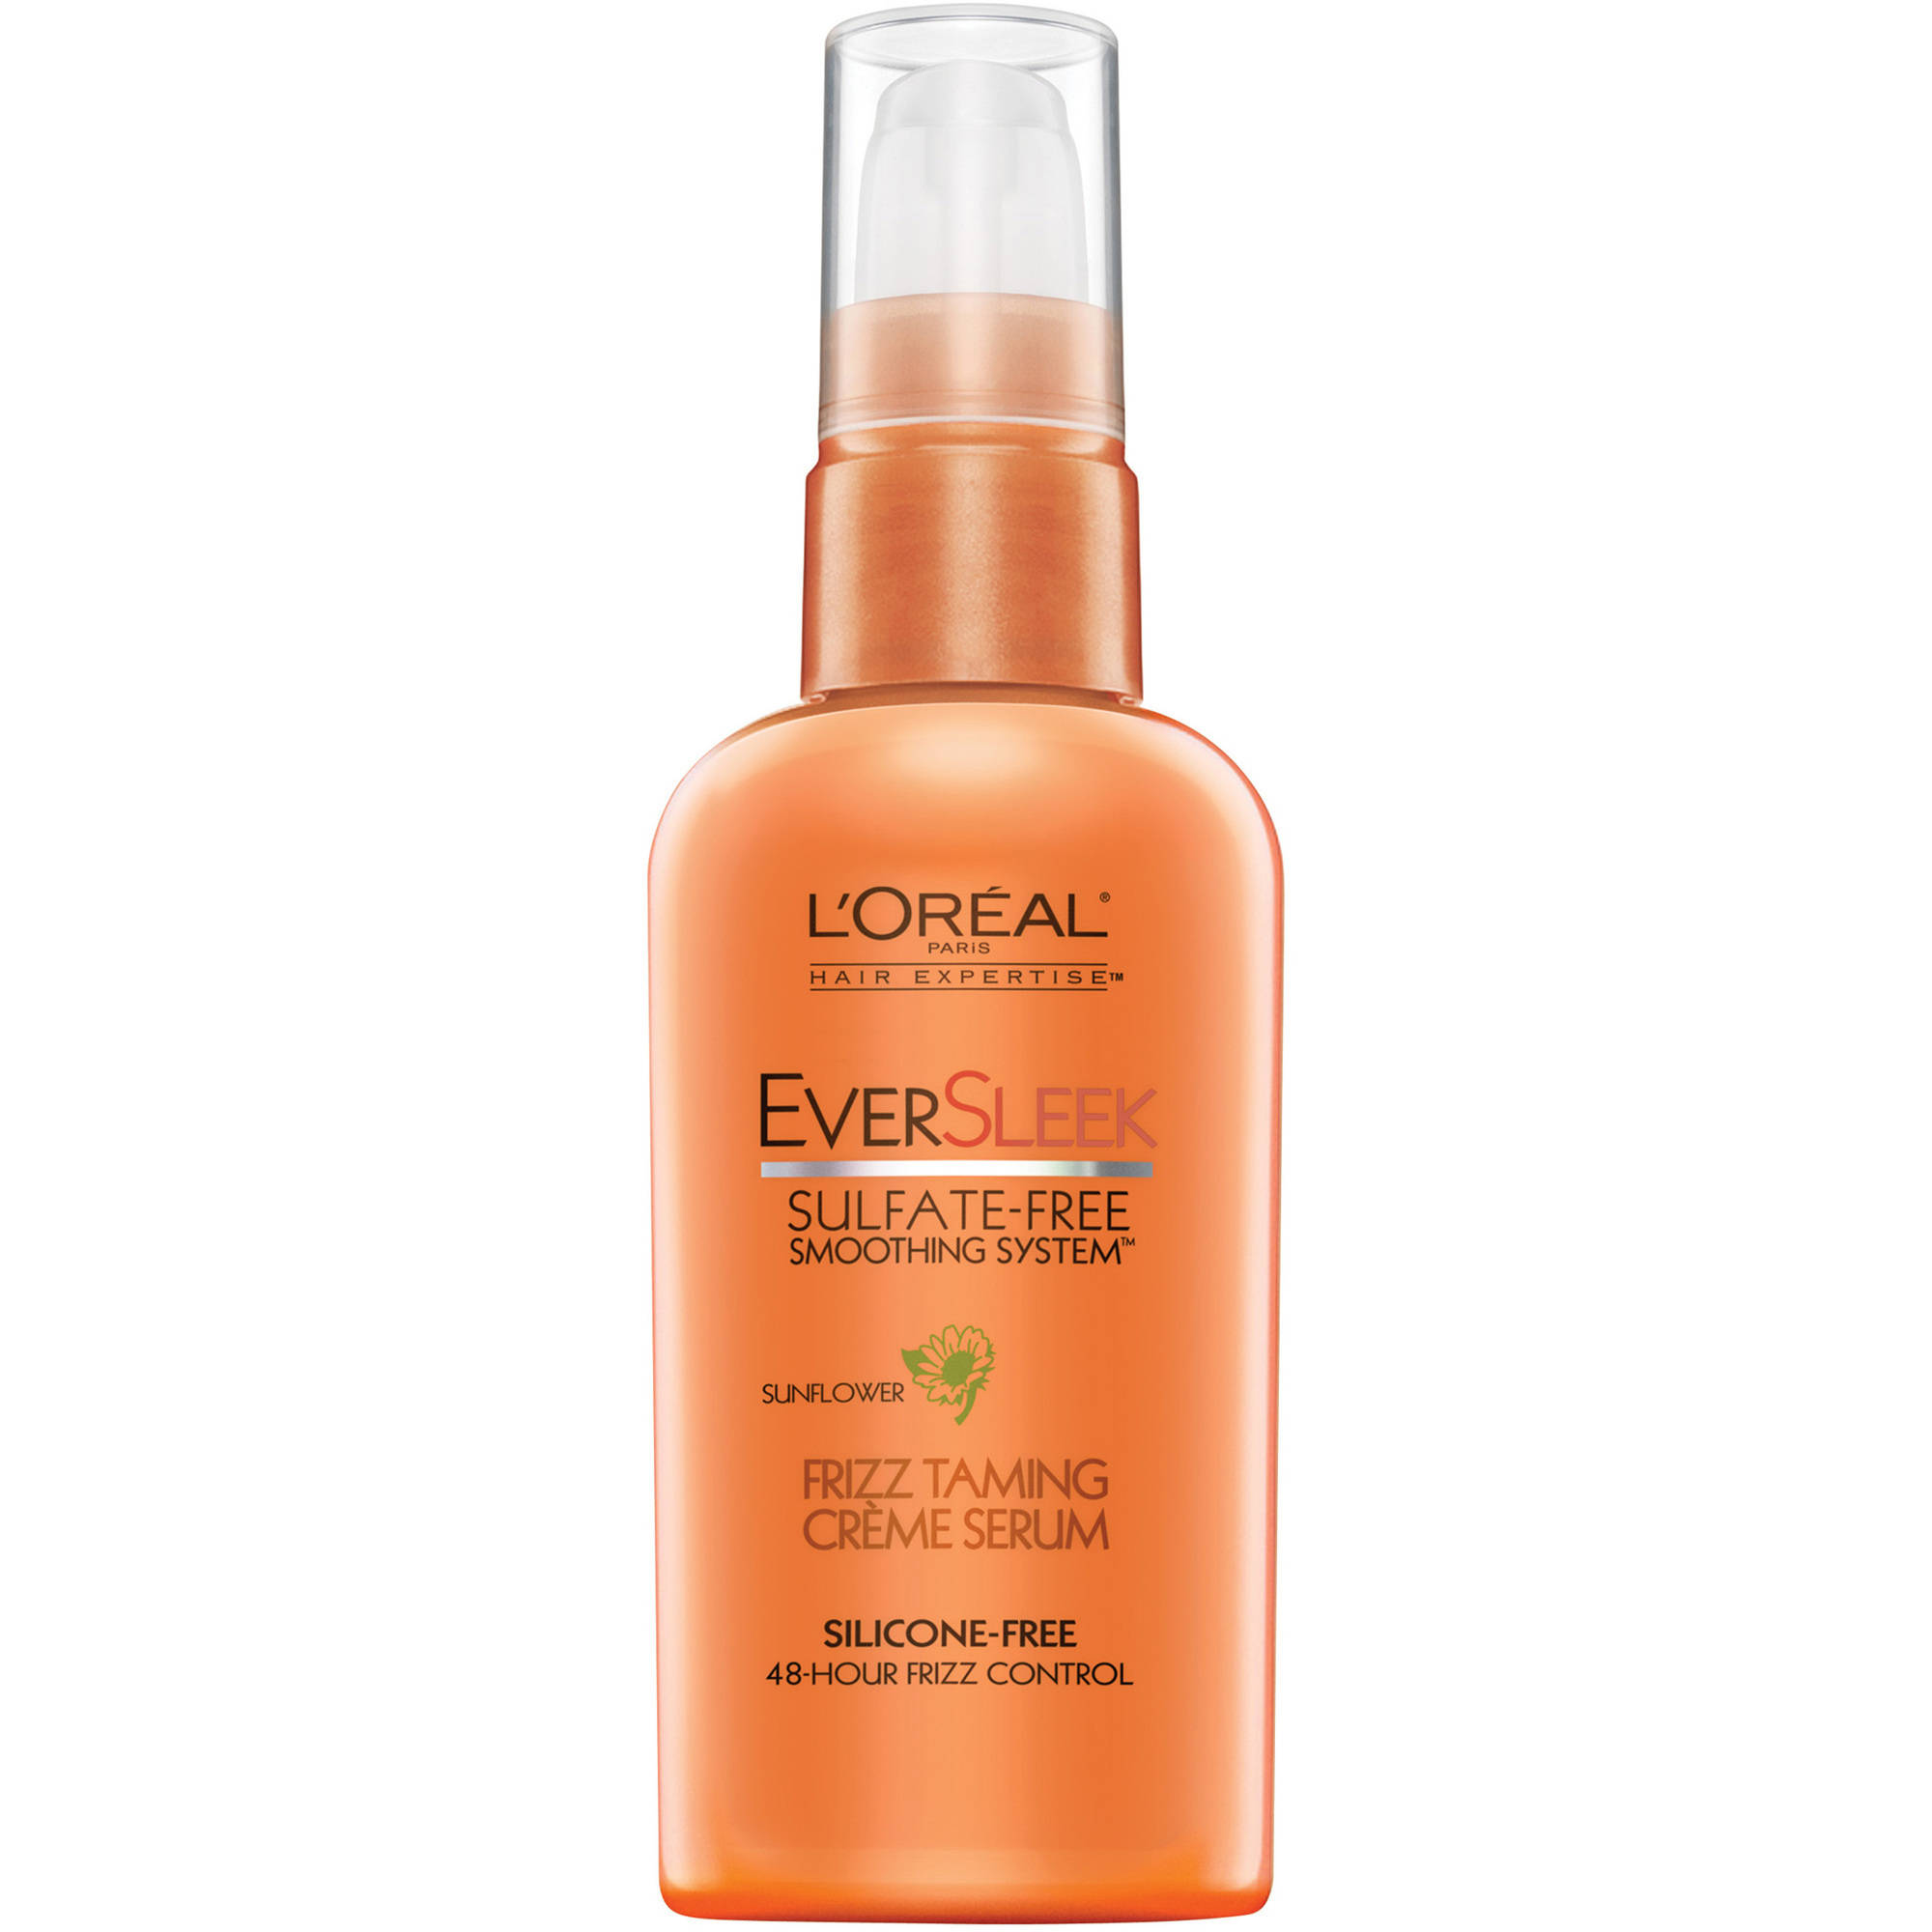 L'Oreal Paris EverSleek Sulfate Free Frizz Taming Creme Serum